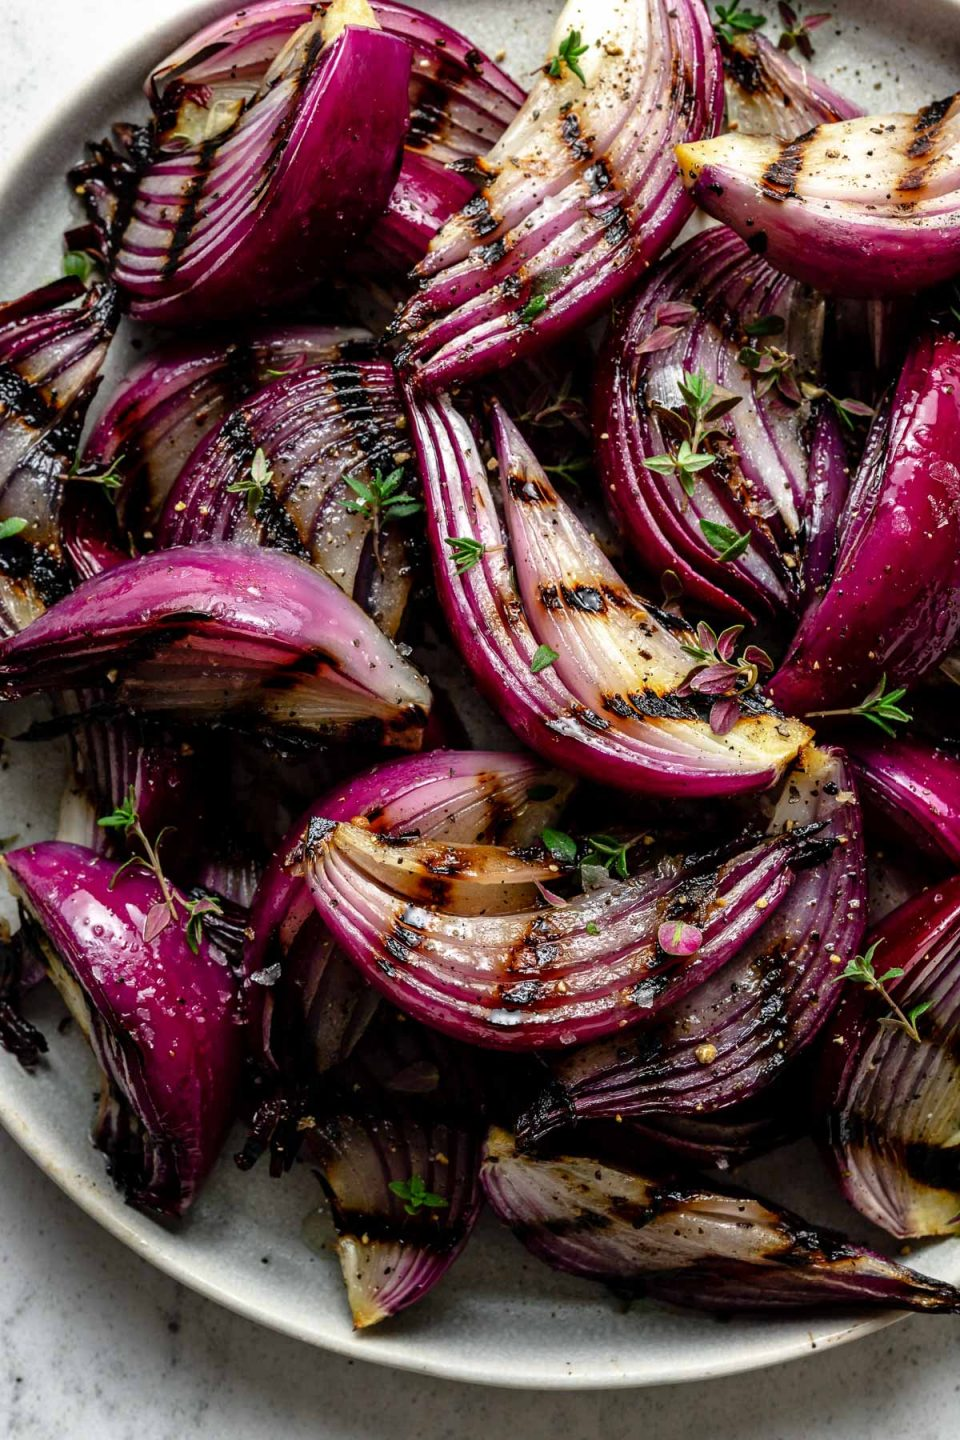 Close up of grilled onion slices with char marks arranged on a white ceramic plate. The grilled red onion slices are garnished with kosher salt, ground black pepper, & fresh herbs. The platter sits on top of a white & gray marble surface.